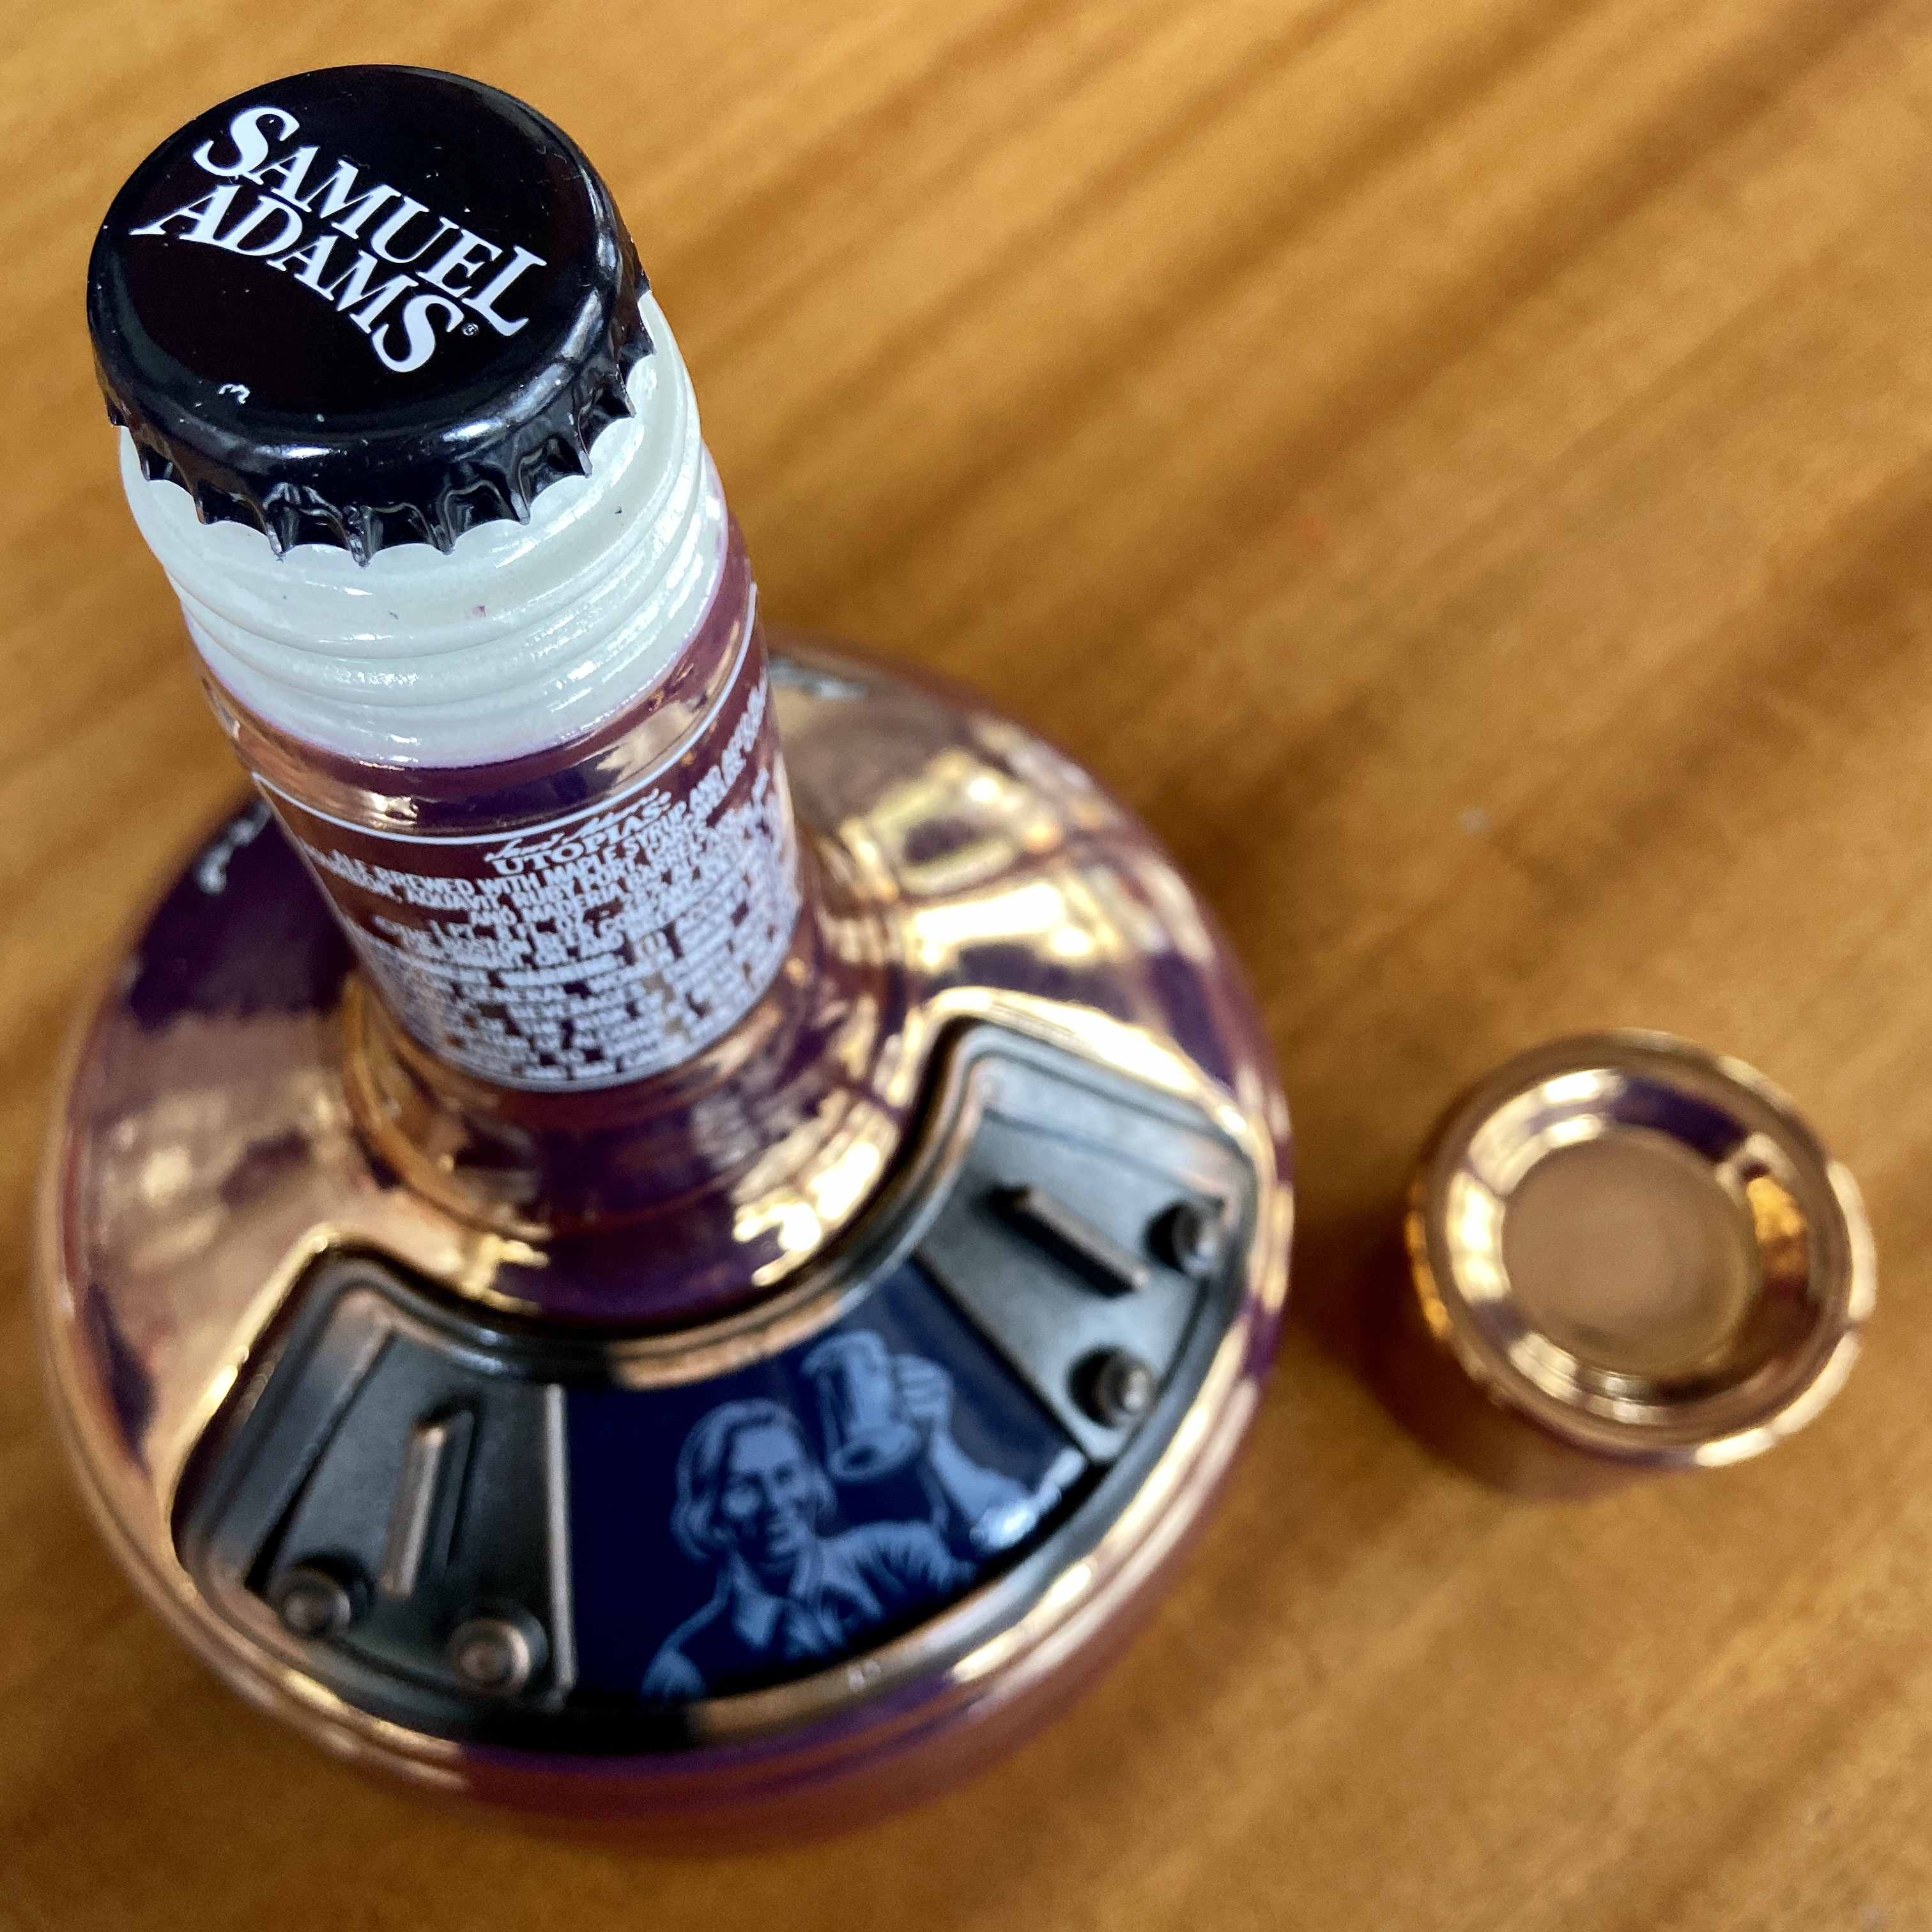 The bottle that Samuel Adams Utopias is hand bottled in is a very elegant presentation. The 25.4oz ceramic decanter looks like a mash tun with doors that open and close.